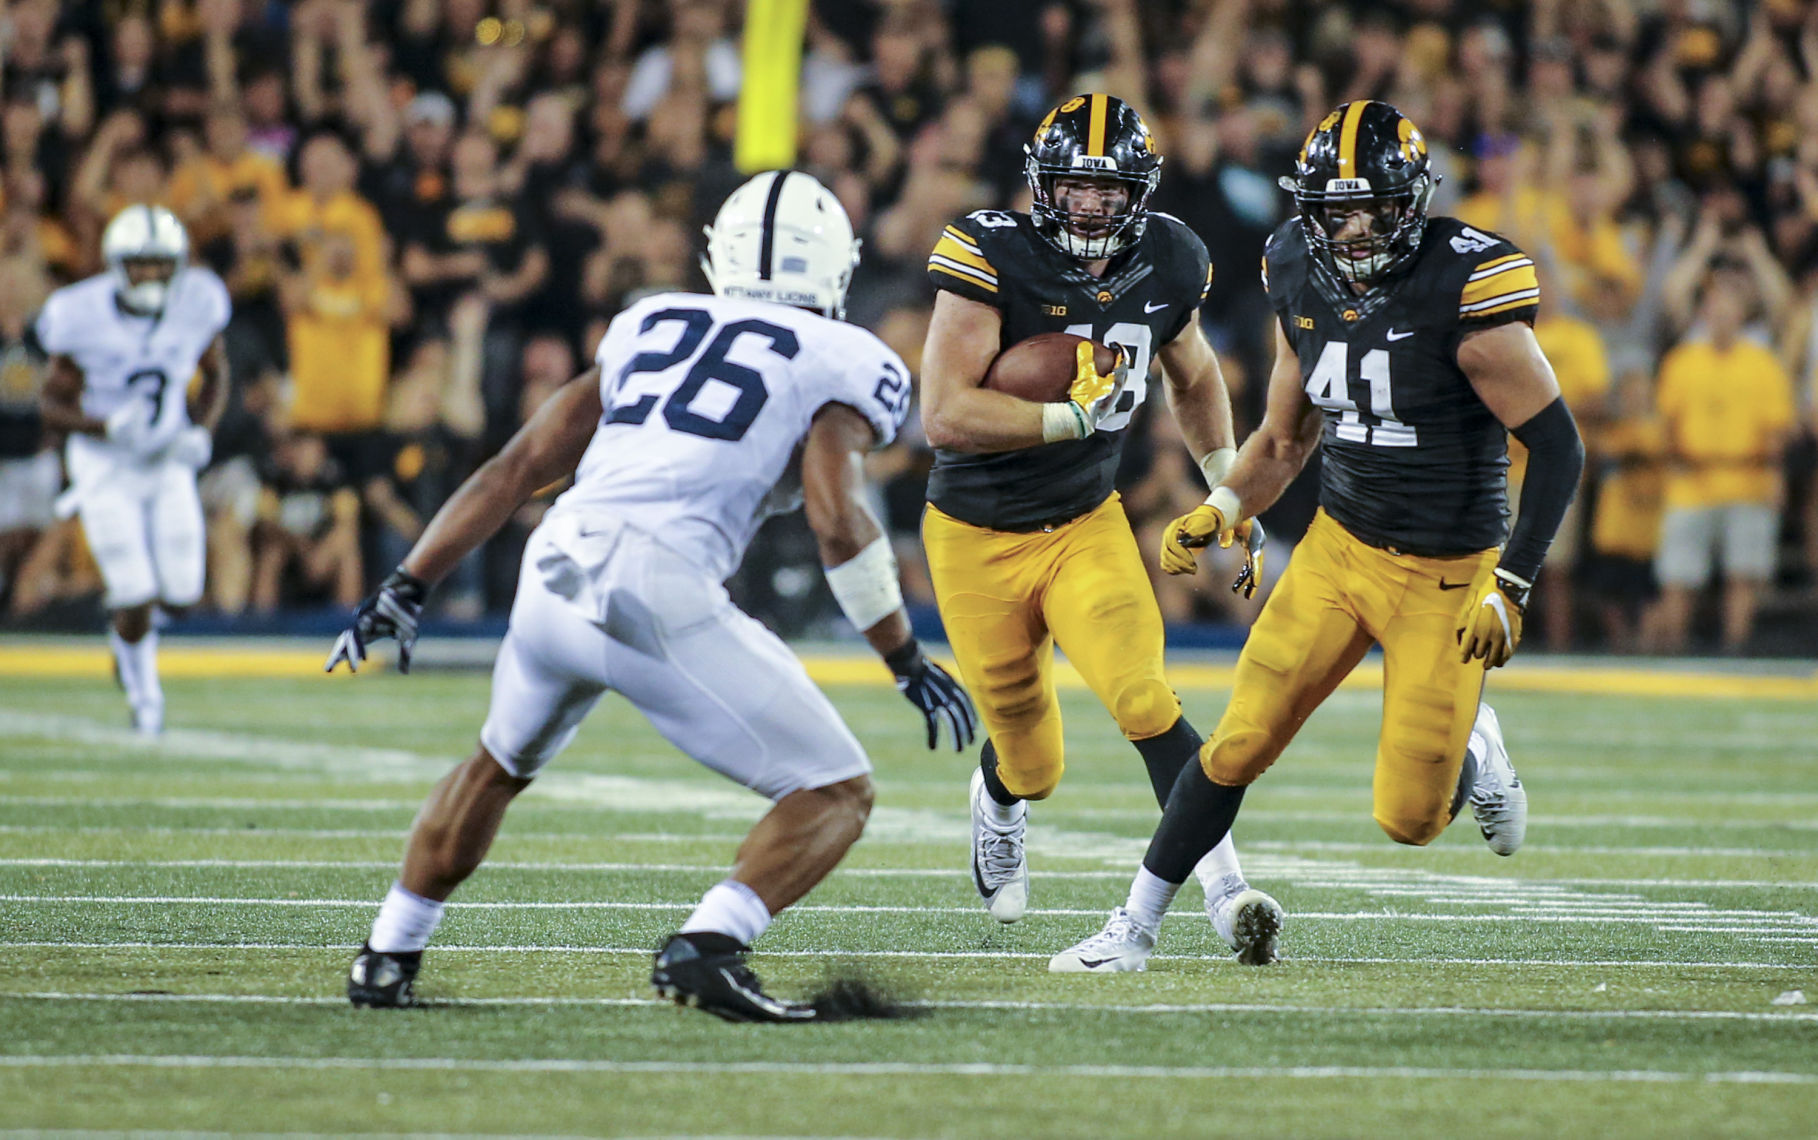 Barkley earns much recognition for performance against Iowa